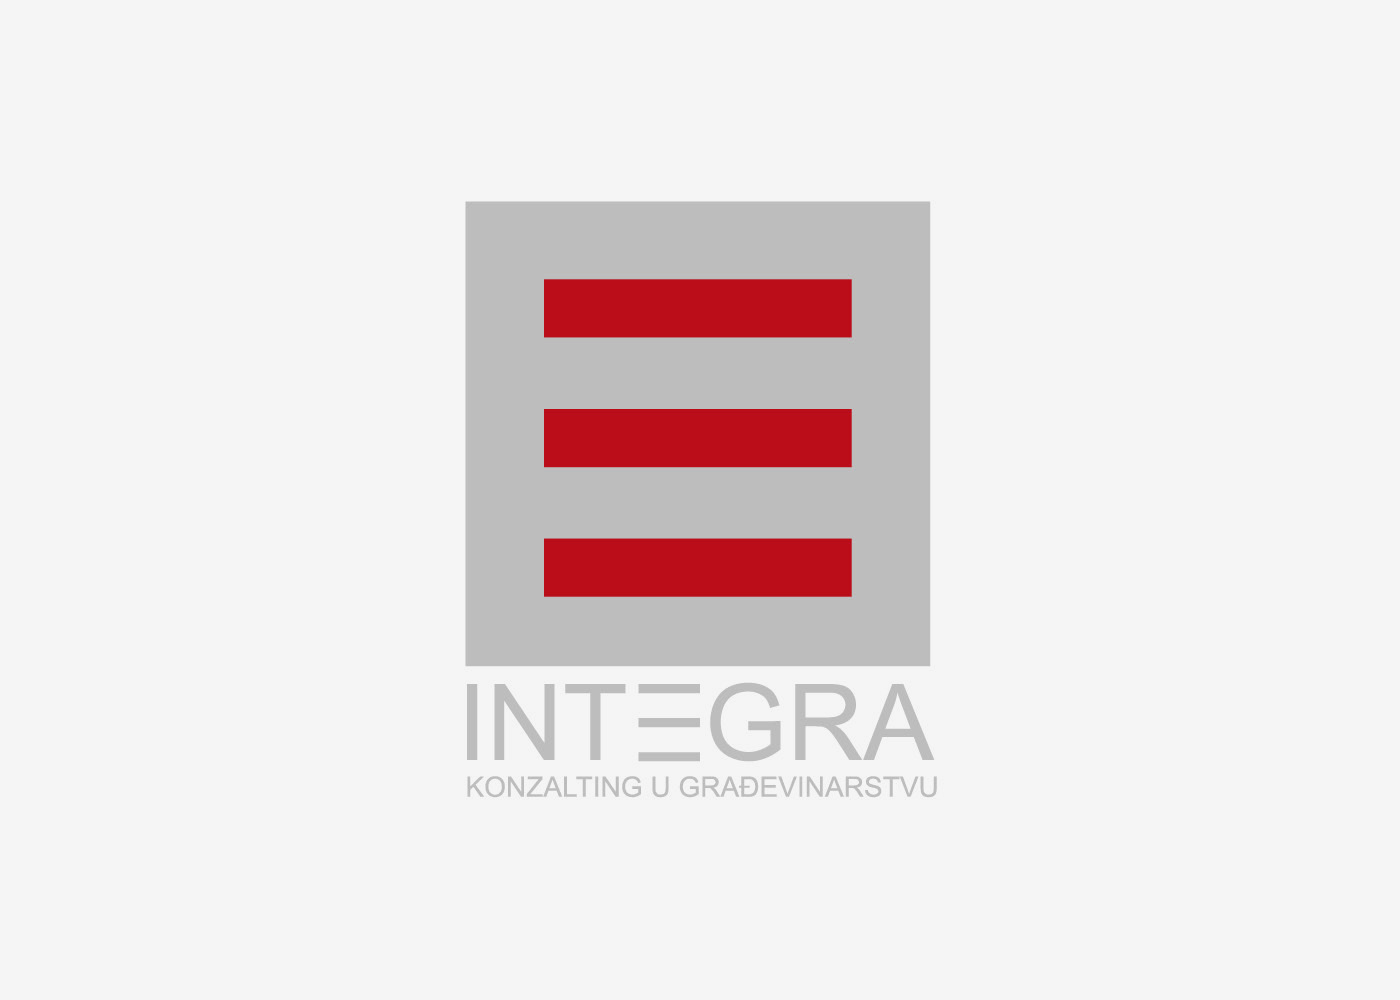 Logo Design for Consulting  Company Integra